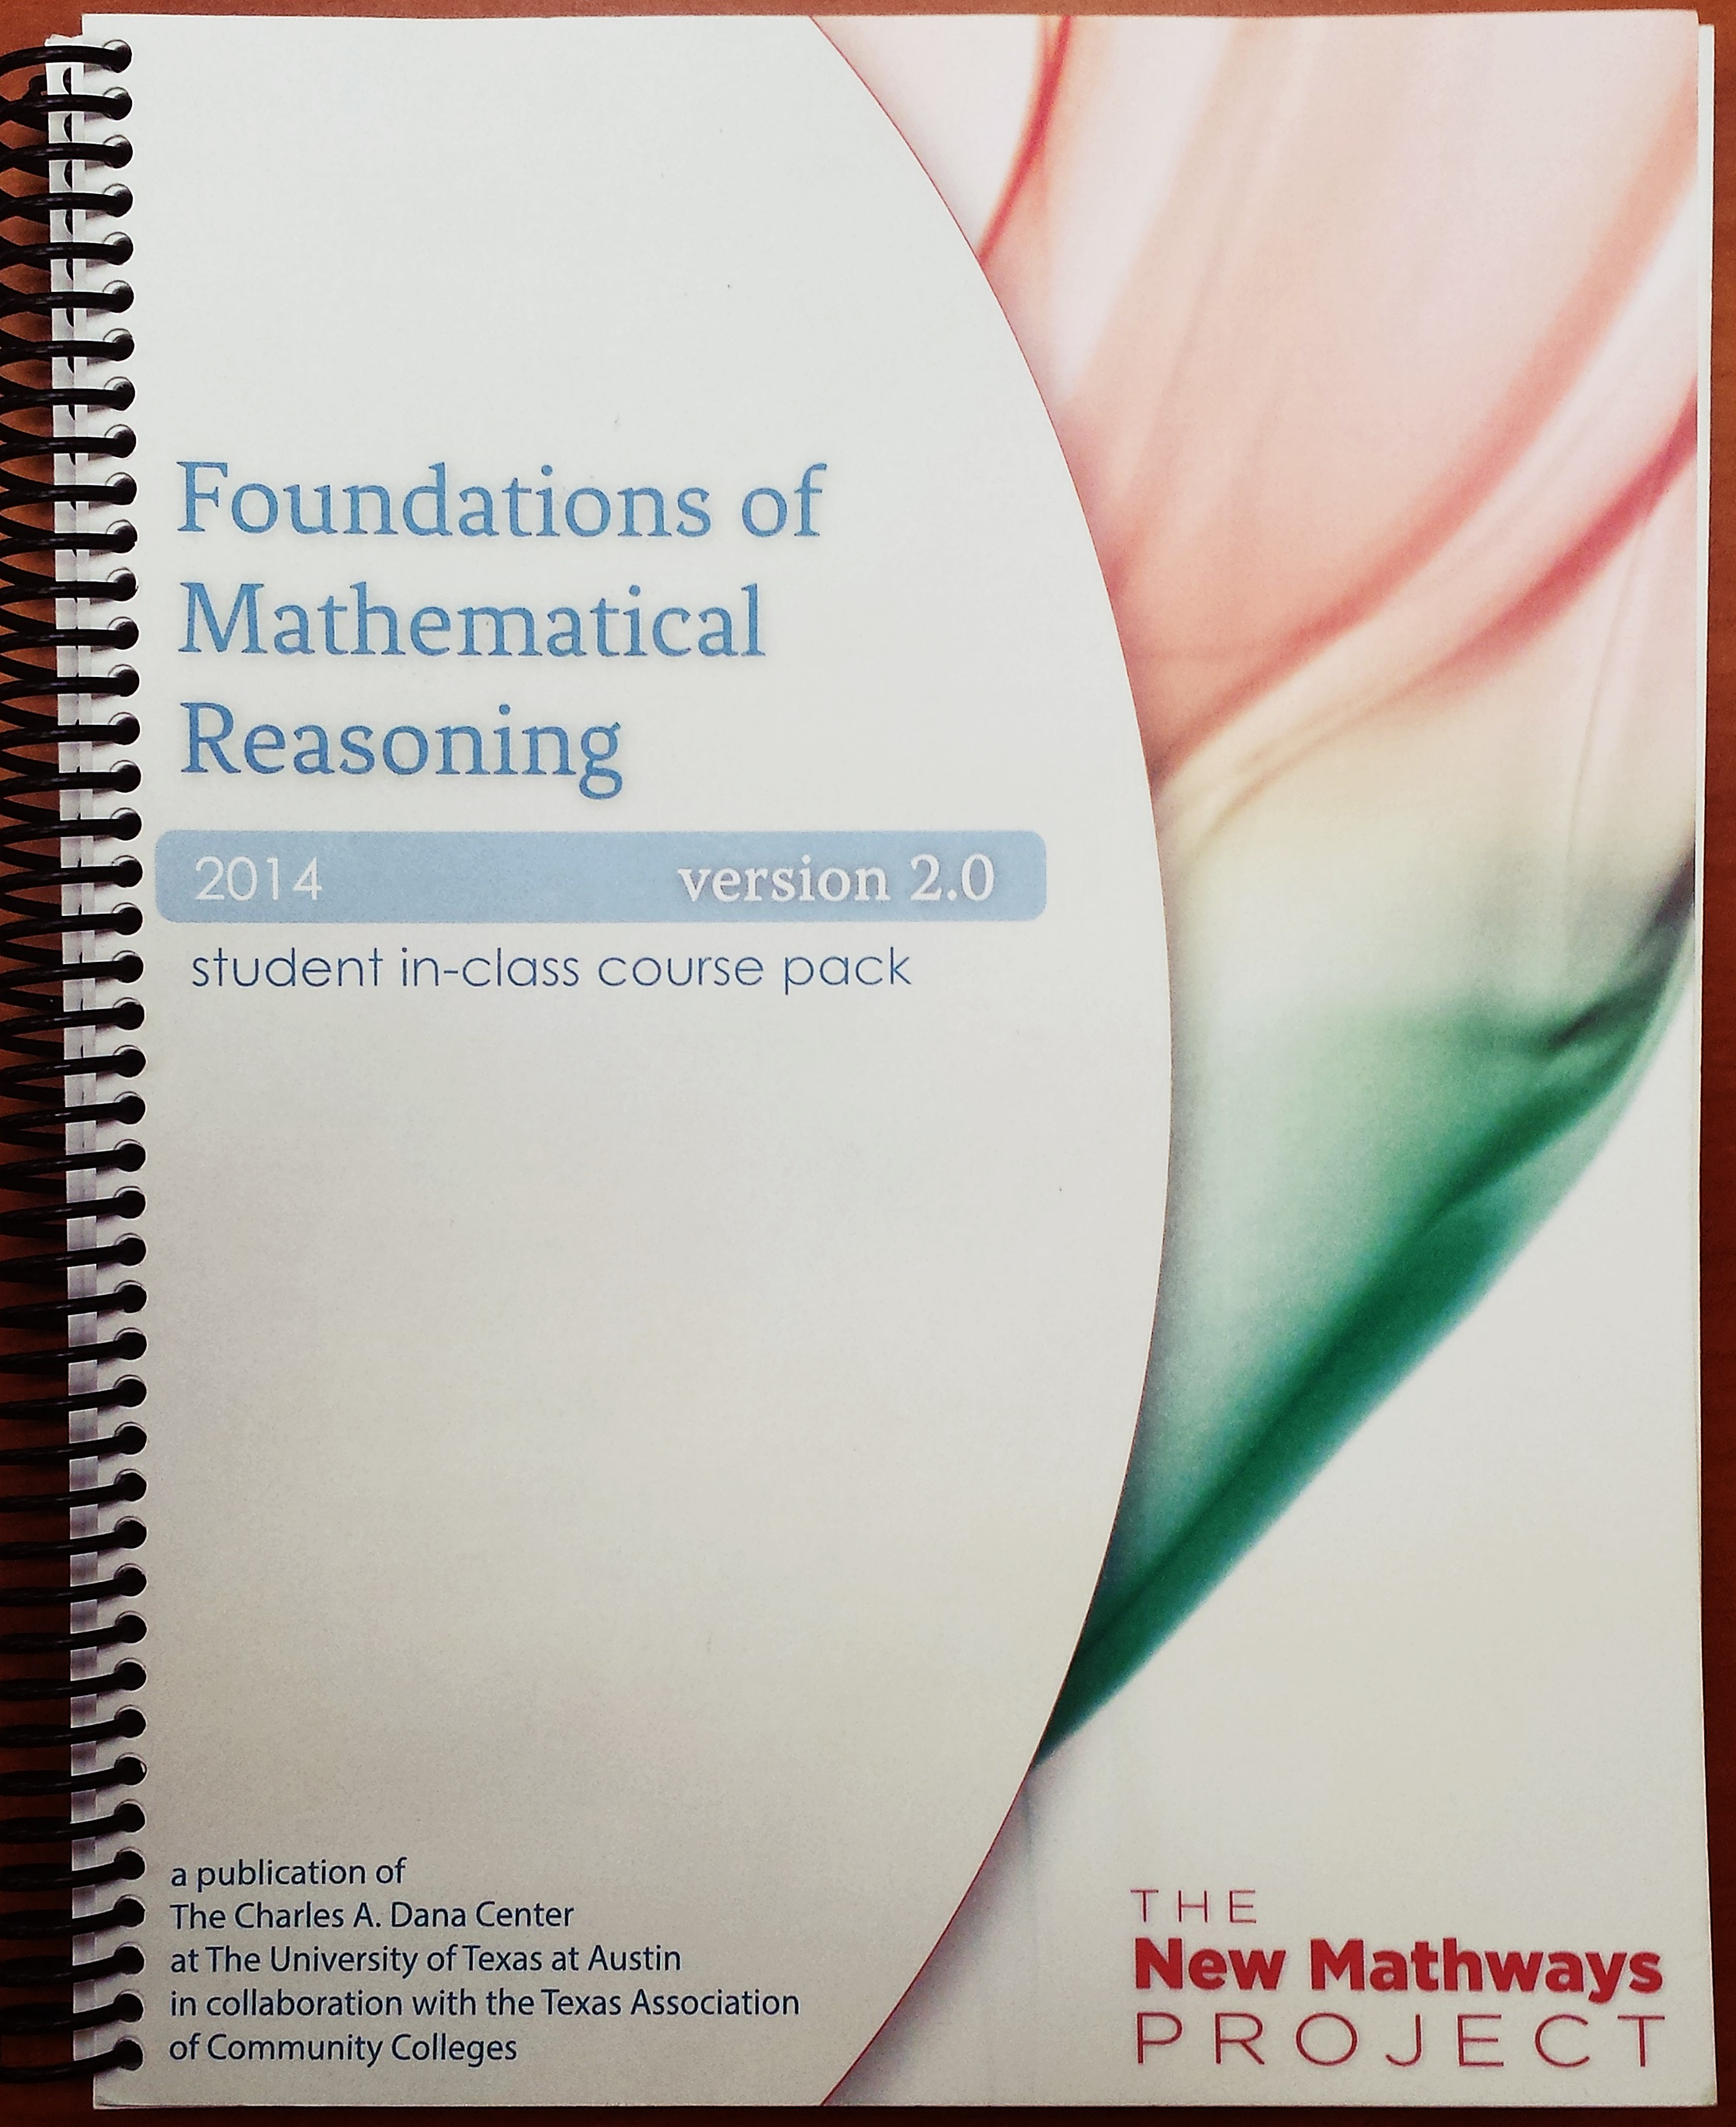 Foundations of Mathematical Reasoning textbook